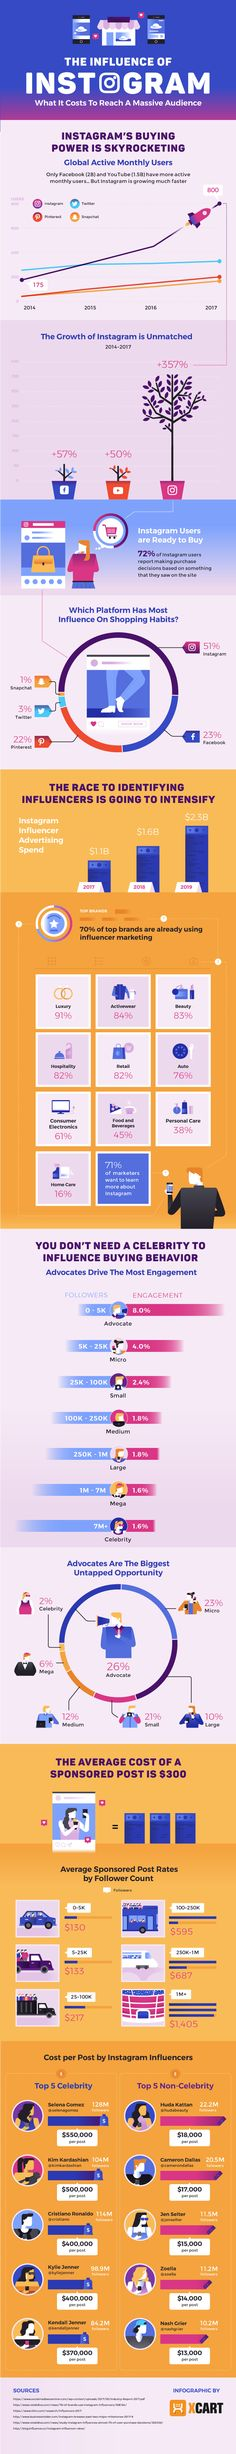 The Influence of Instagram #Infographic #Instagram #SocialMedia